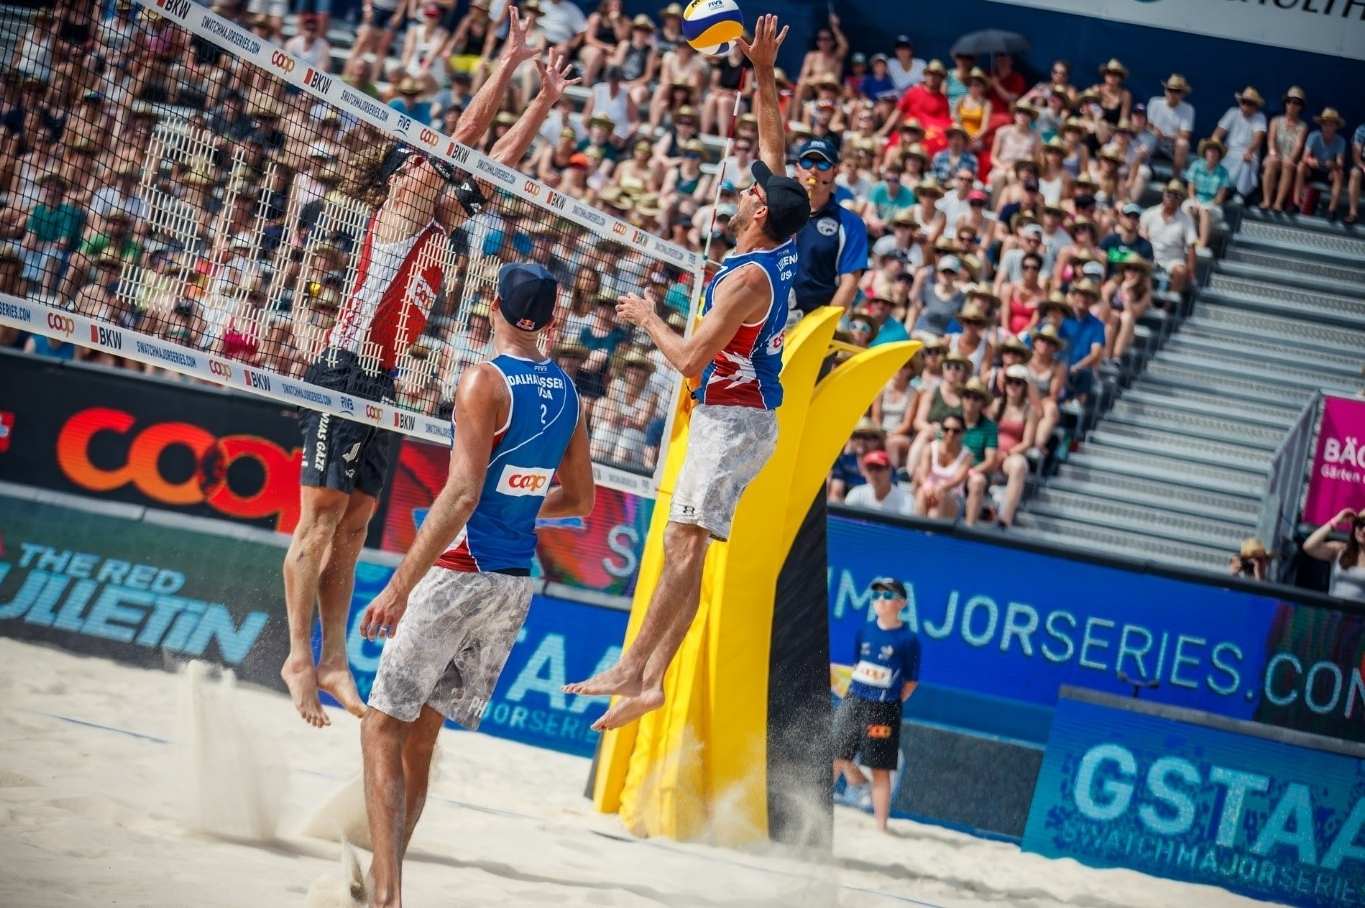 The American dream lives on for Dalhausser/Lucena. Martin Steinthaler.